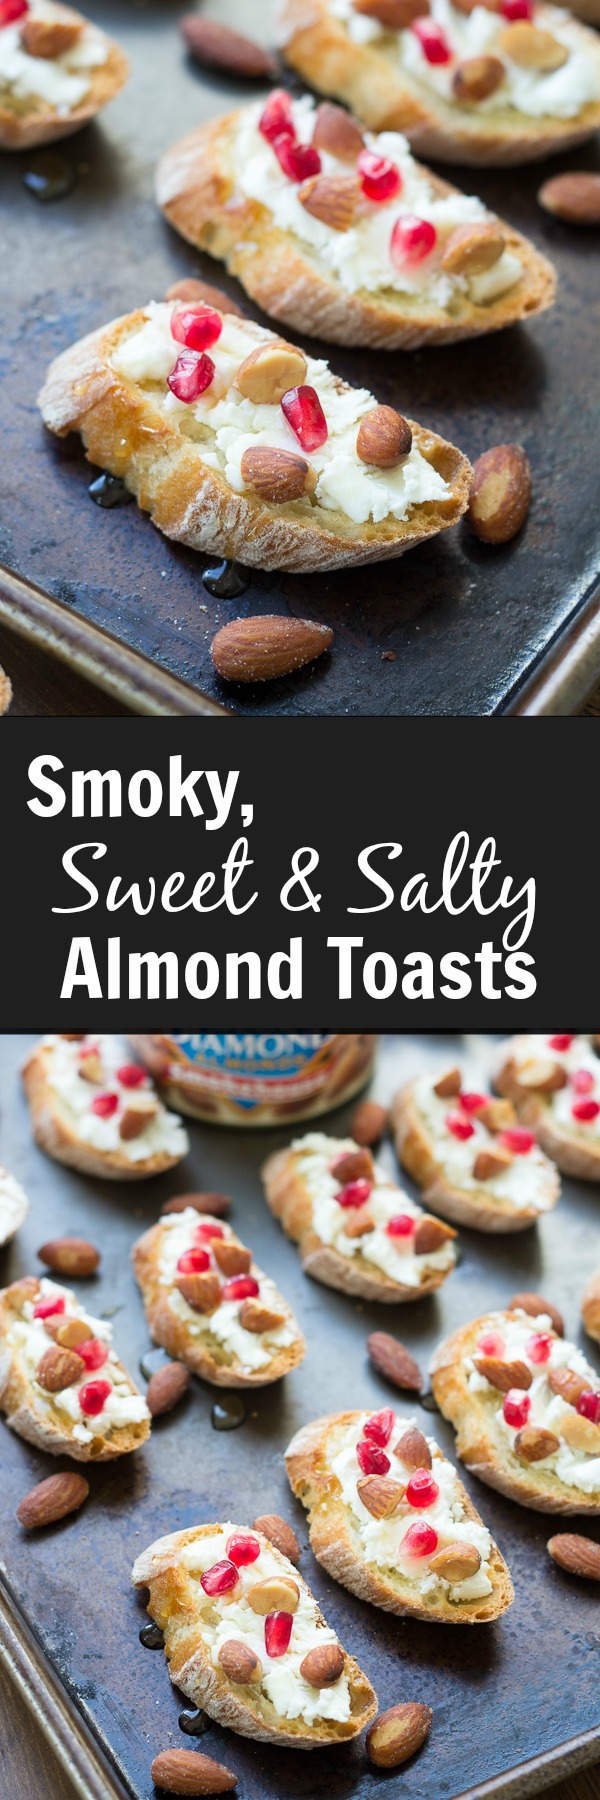 Smoky, Sweet & Salty Almond Toasts are creamy, crunchy, and irresistible! With smoky almonds, honey, goat cheese, and pomegranate arils, these bite-size appetizers will be the hit of the party!